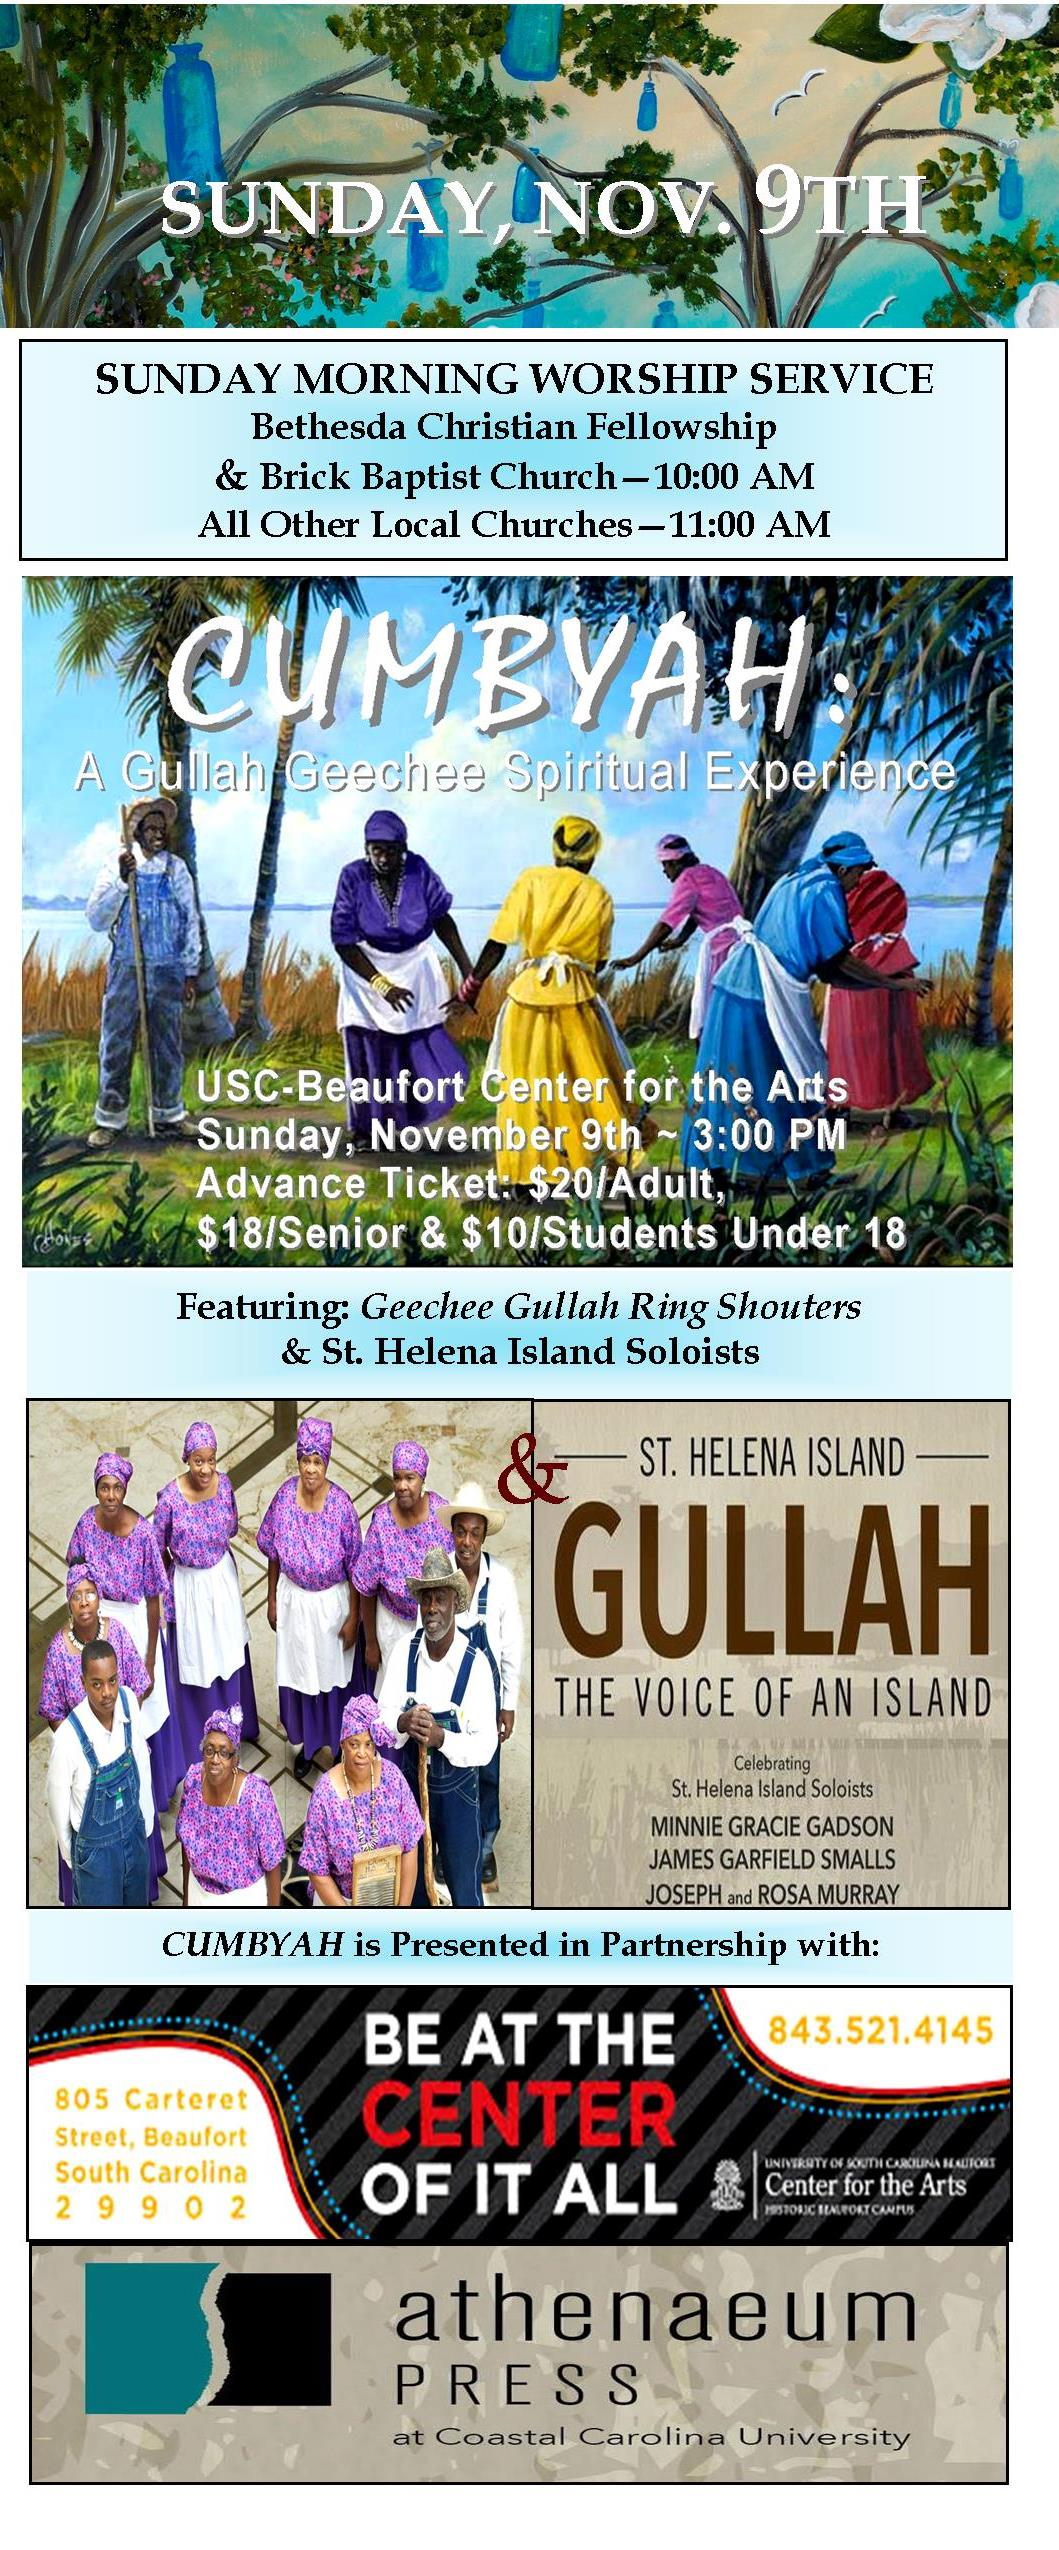 Gullah culture | Beaufort County Historical Resources